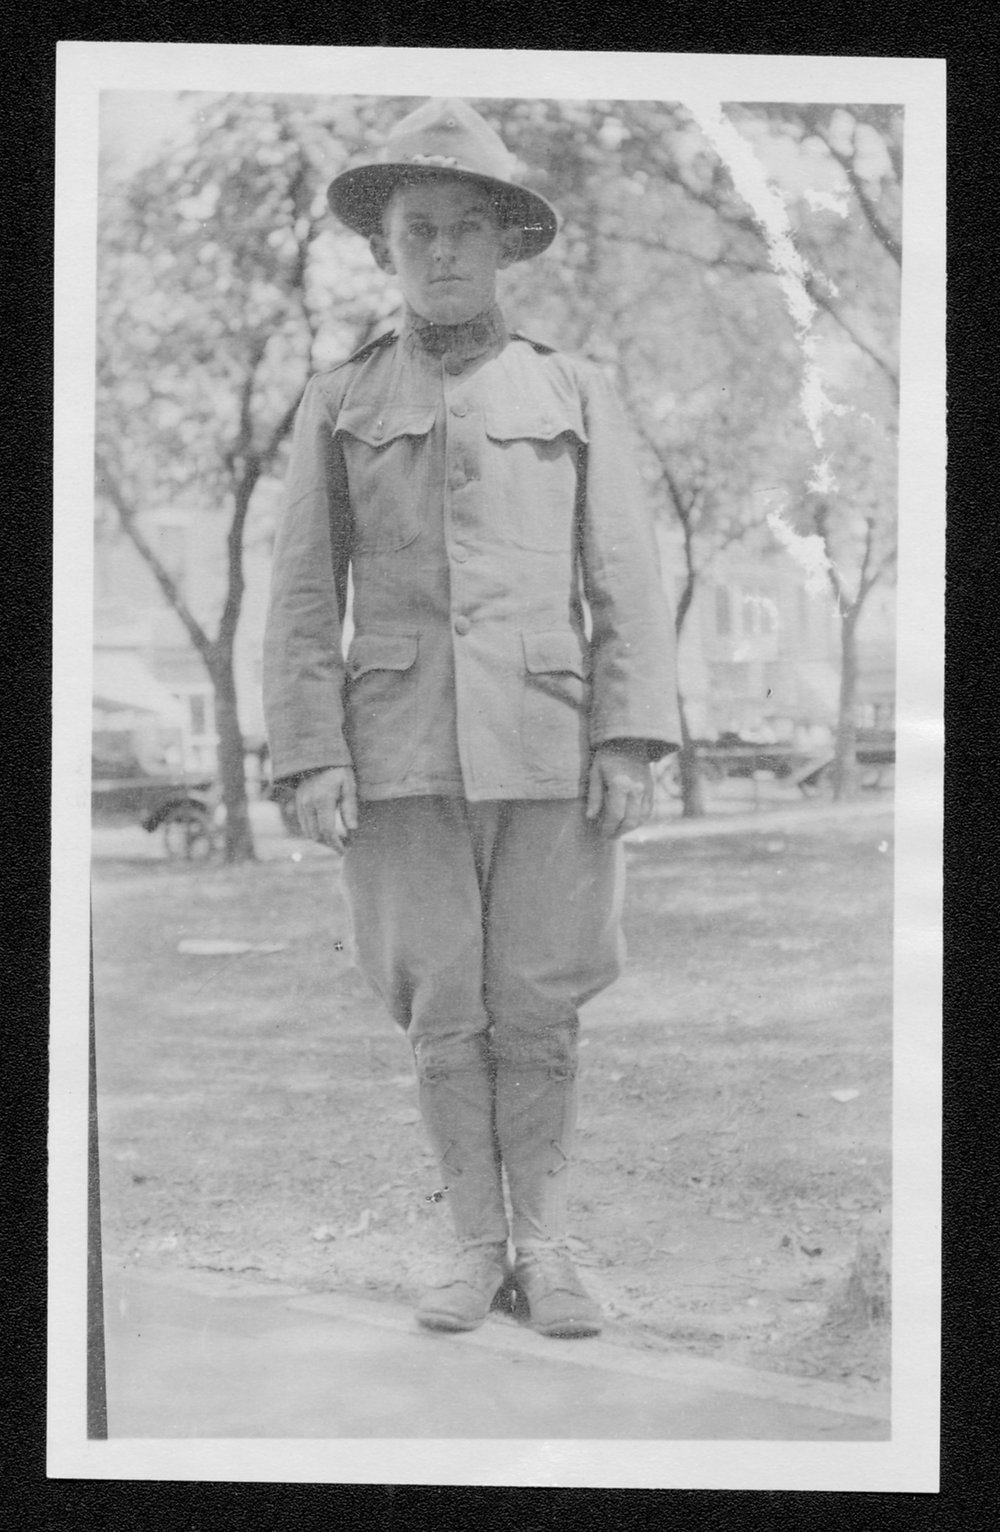 William Harold Sanders, World War I soldier - 1